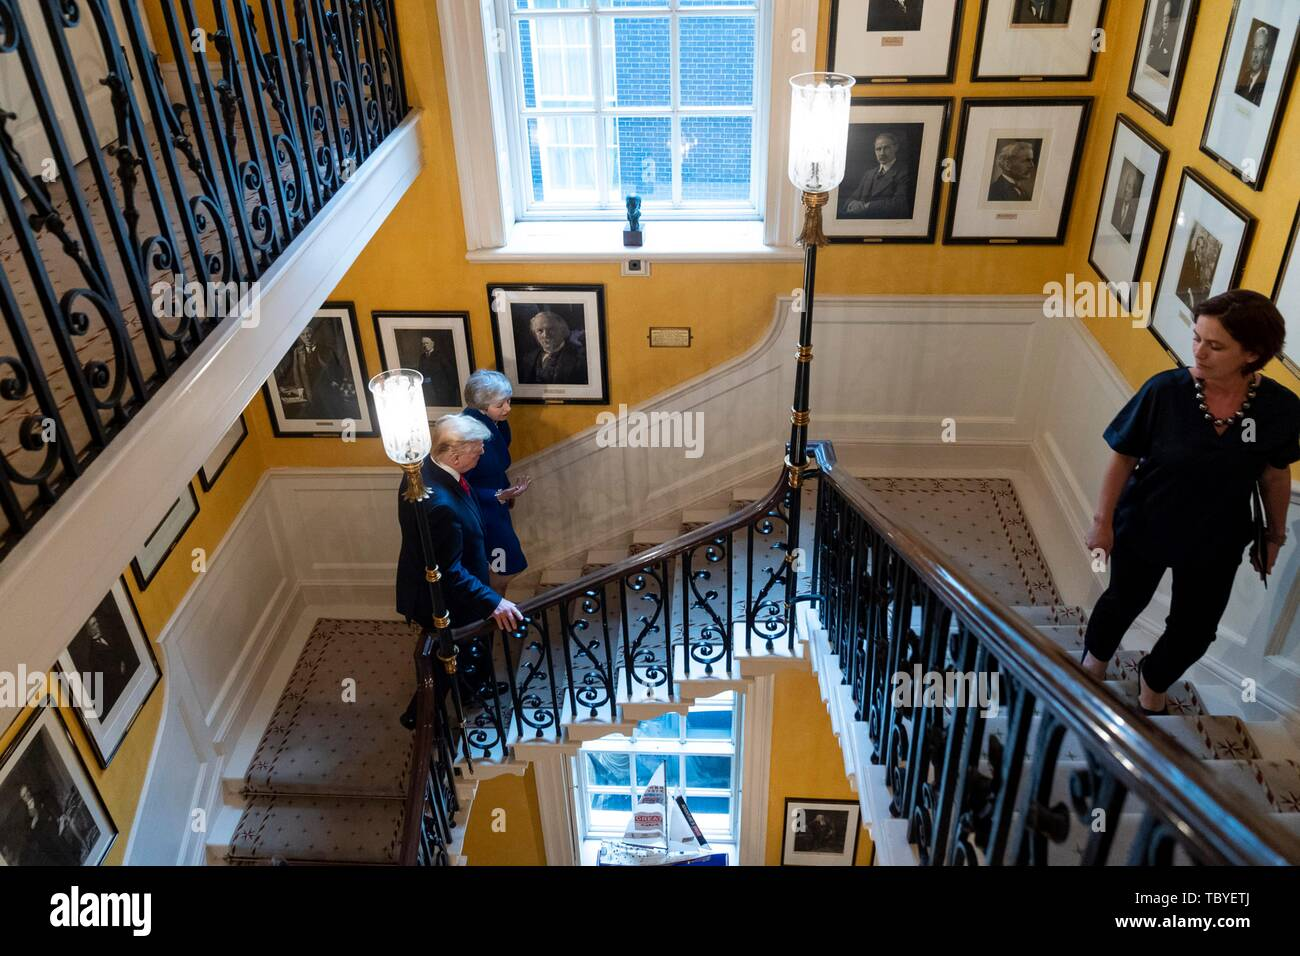 London, UK. 04th June, 2019. U.S President Donald Trump and outgoing British Prime Minister Theresa May walk to their bilateral meeting at No. 10 Downing Street June 4, 2019 in London, England. Credit: Planetpix/Alamy Live News - Stock Image